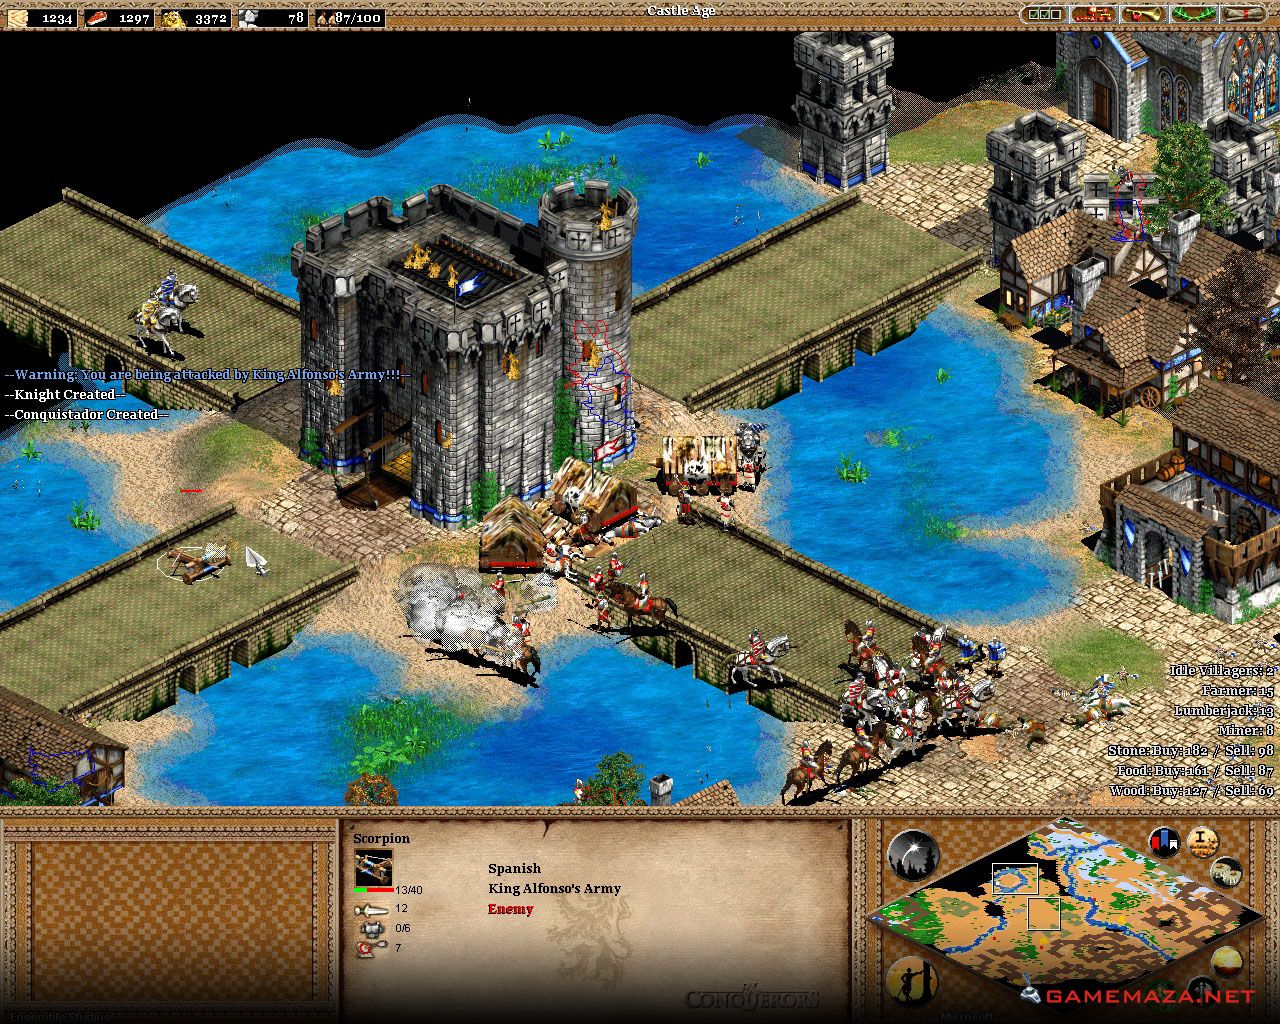 Age Of Empires 3 Africa Maps%0A Commandos MenofCourageFreeDownload   Games to Download Free    Pinterest   Game system requirements and System requirements